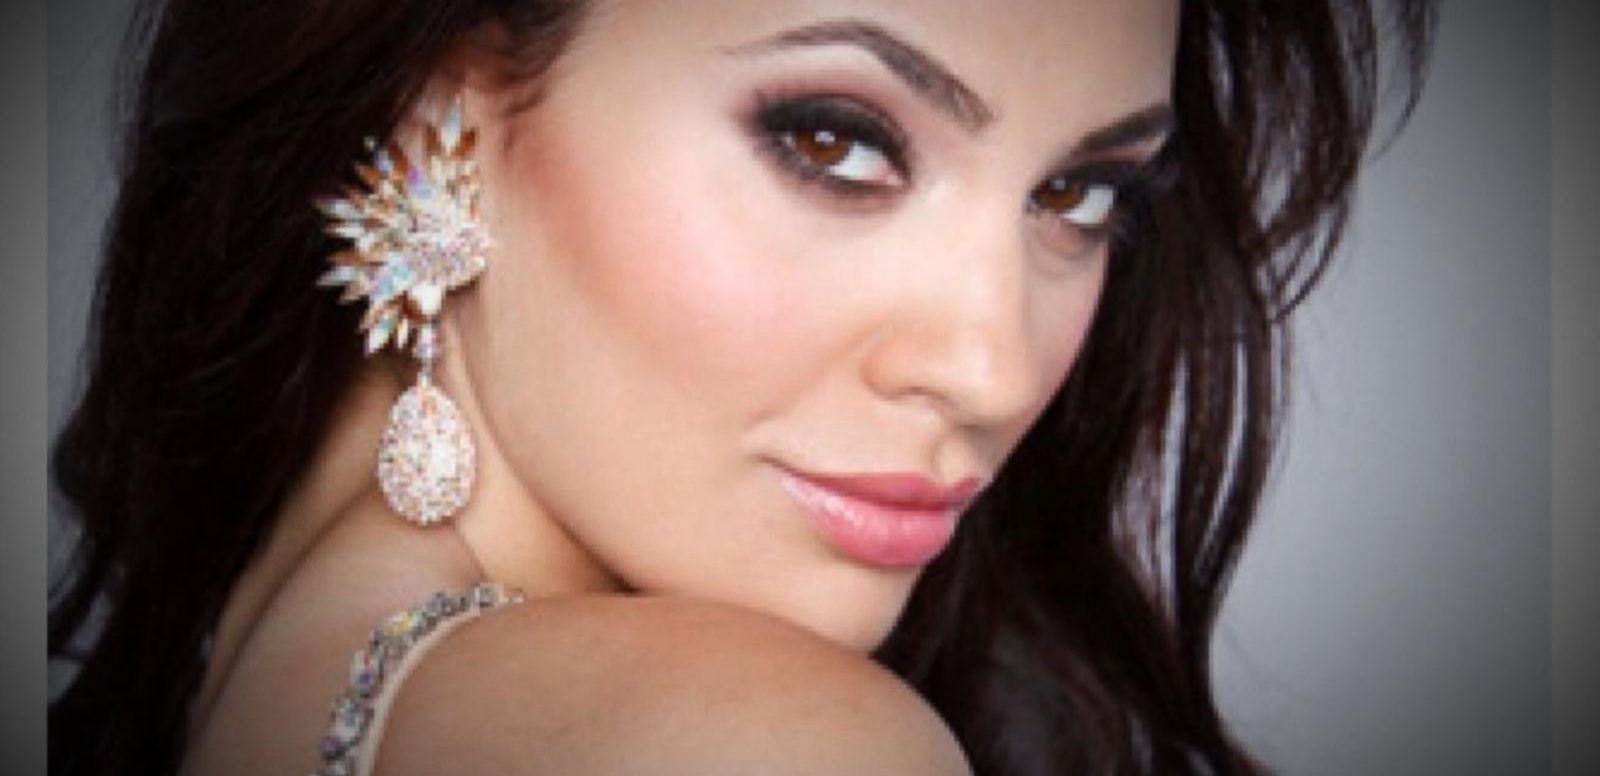 VIDEO: Former Beauty Queen Claims She Was Targeted With Tracking Device